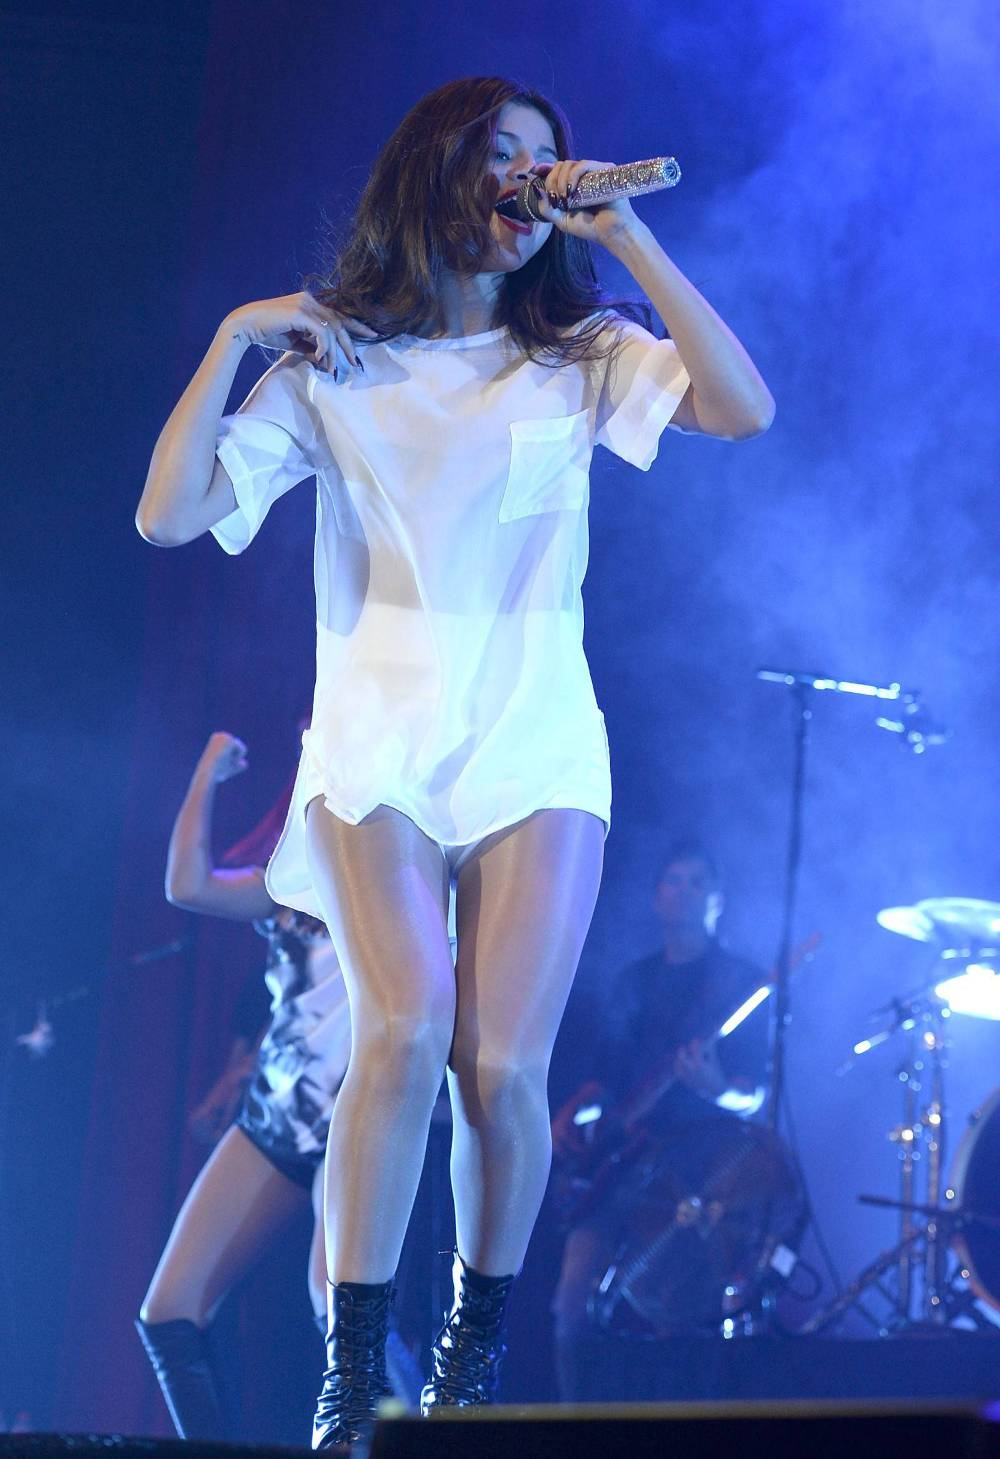 Selena Gomez Pussy Lips Flashing on The Stage Performs Live in Madrid